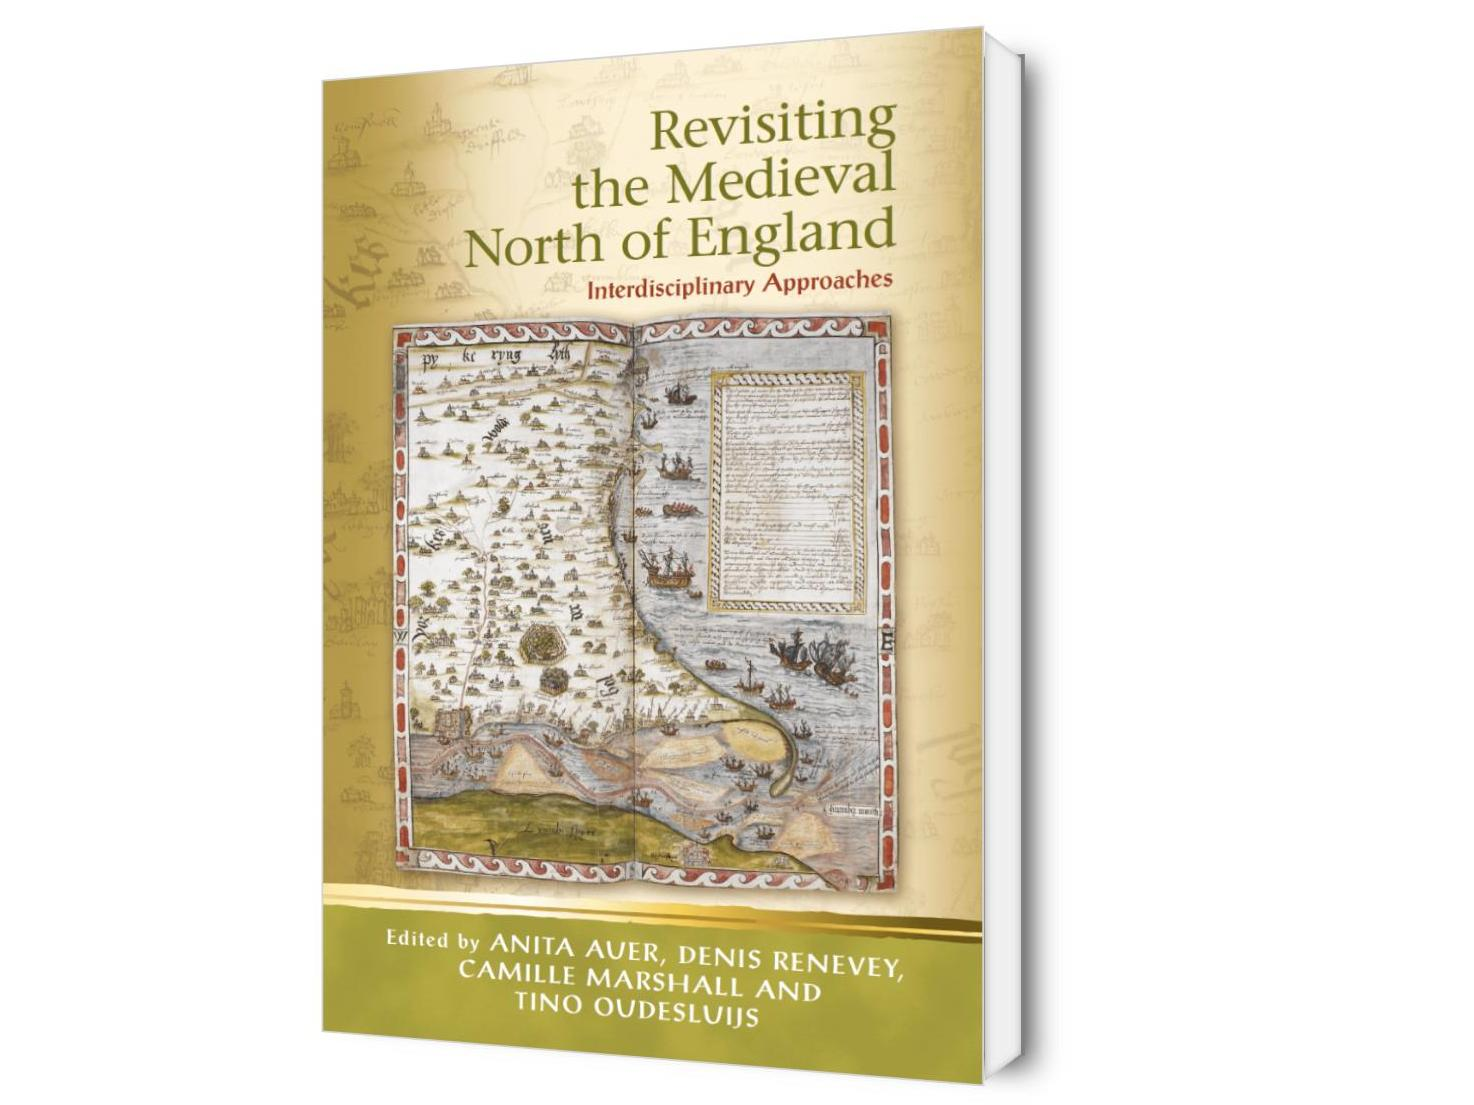 Revisiting the Medieval North of England : Interdisciplinary Approaches